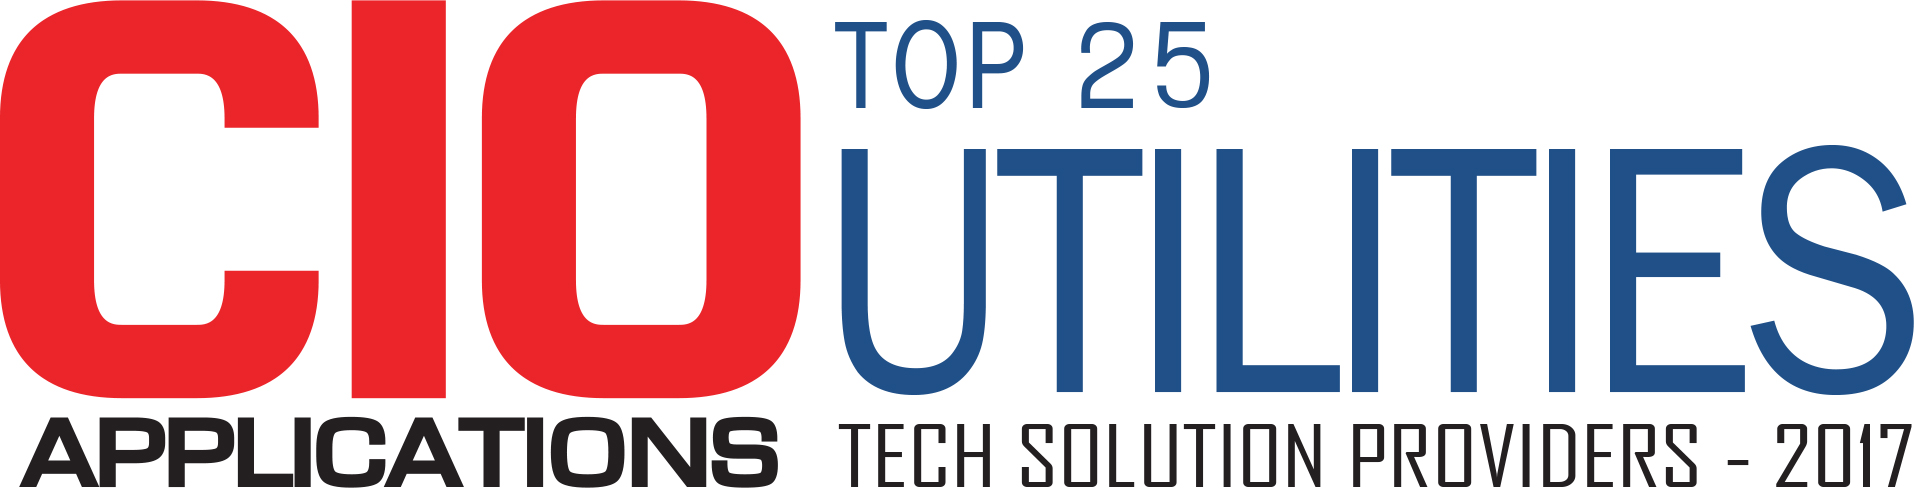 Top 25 Utilities Tech Solution Companies - 2017